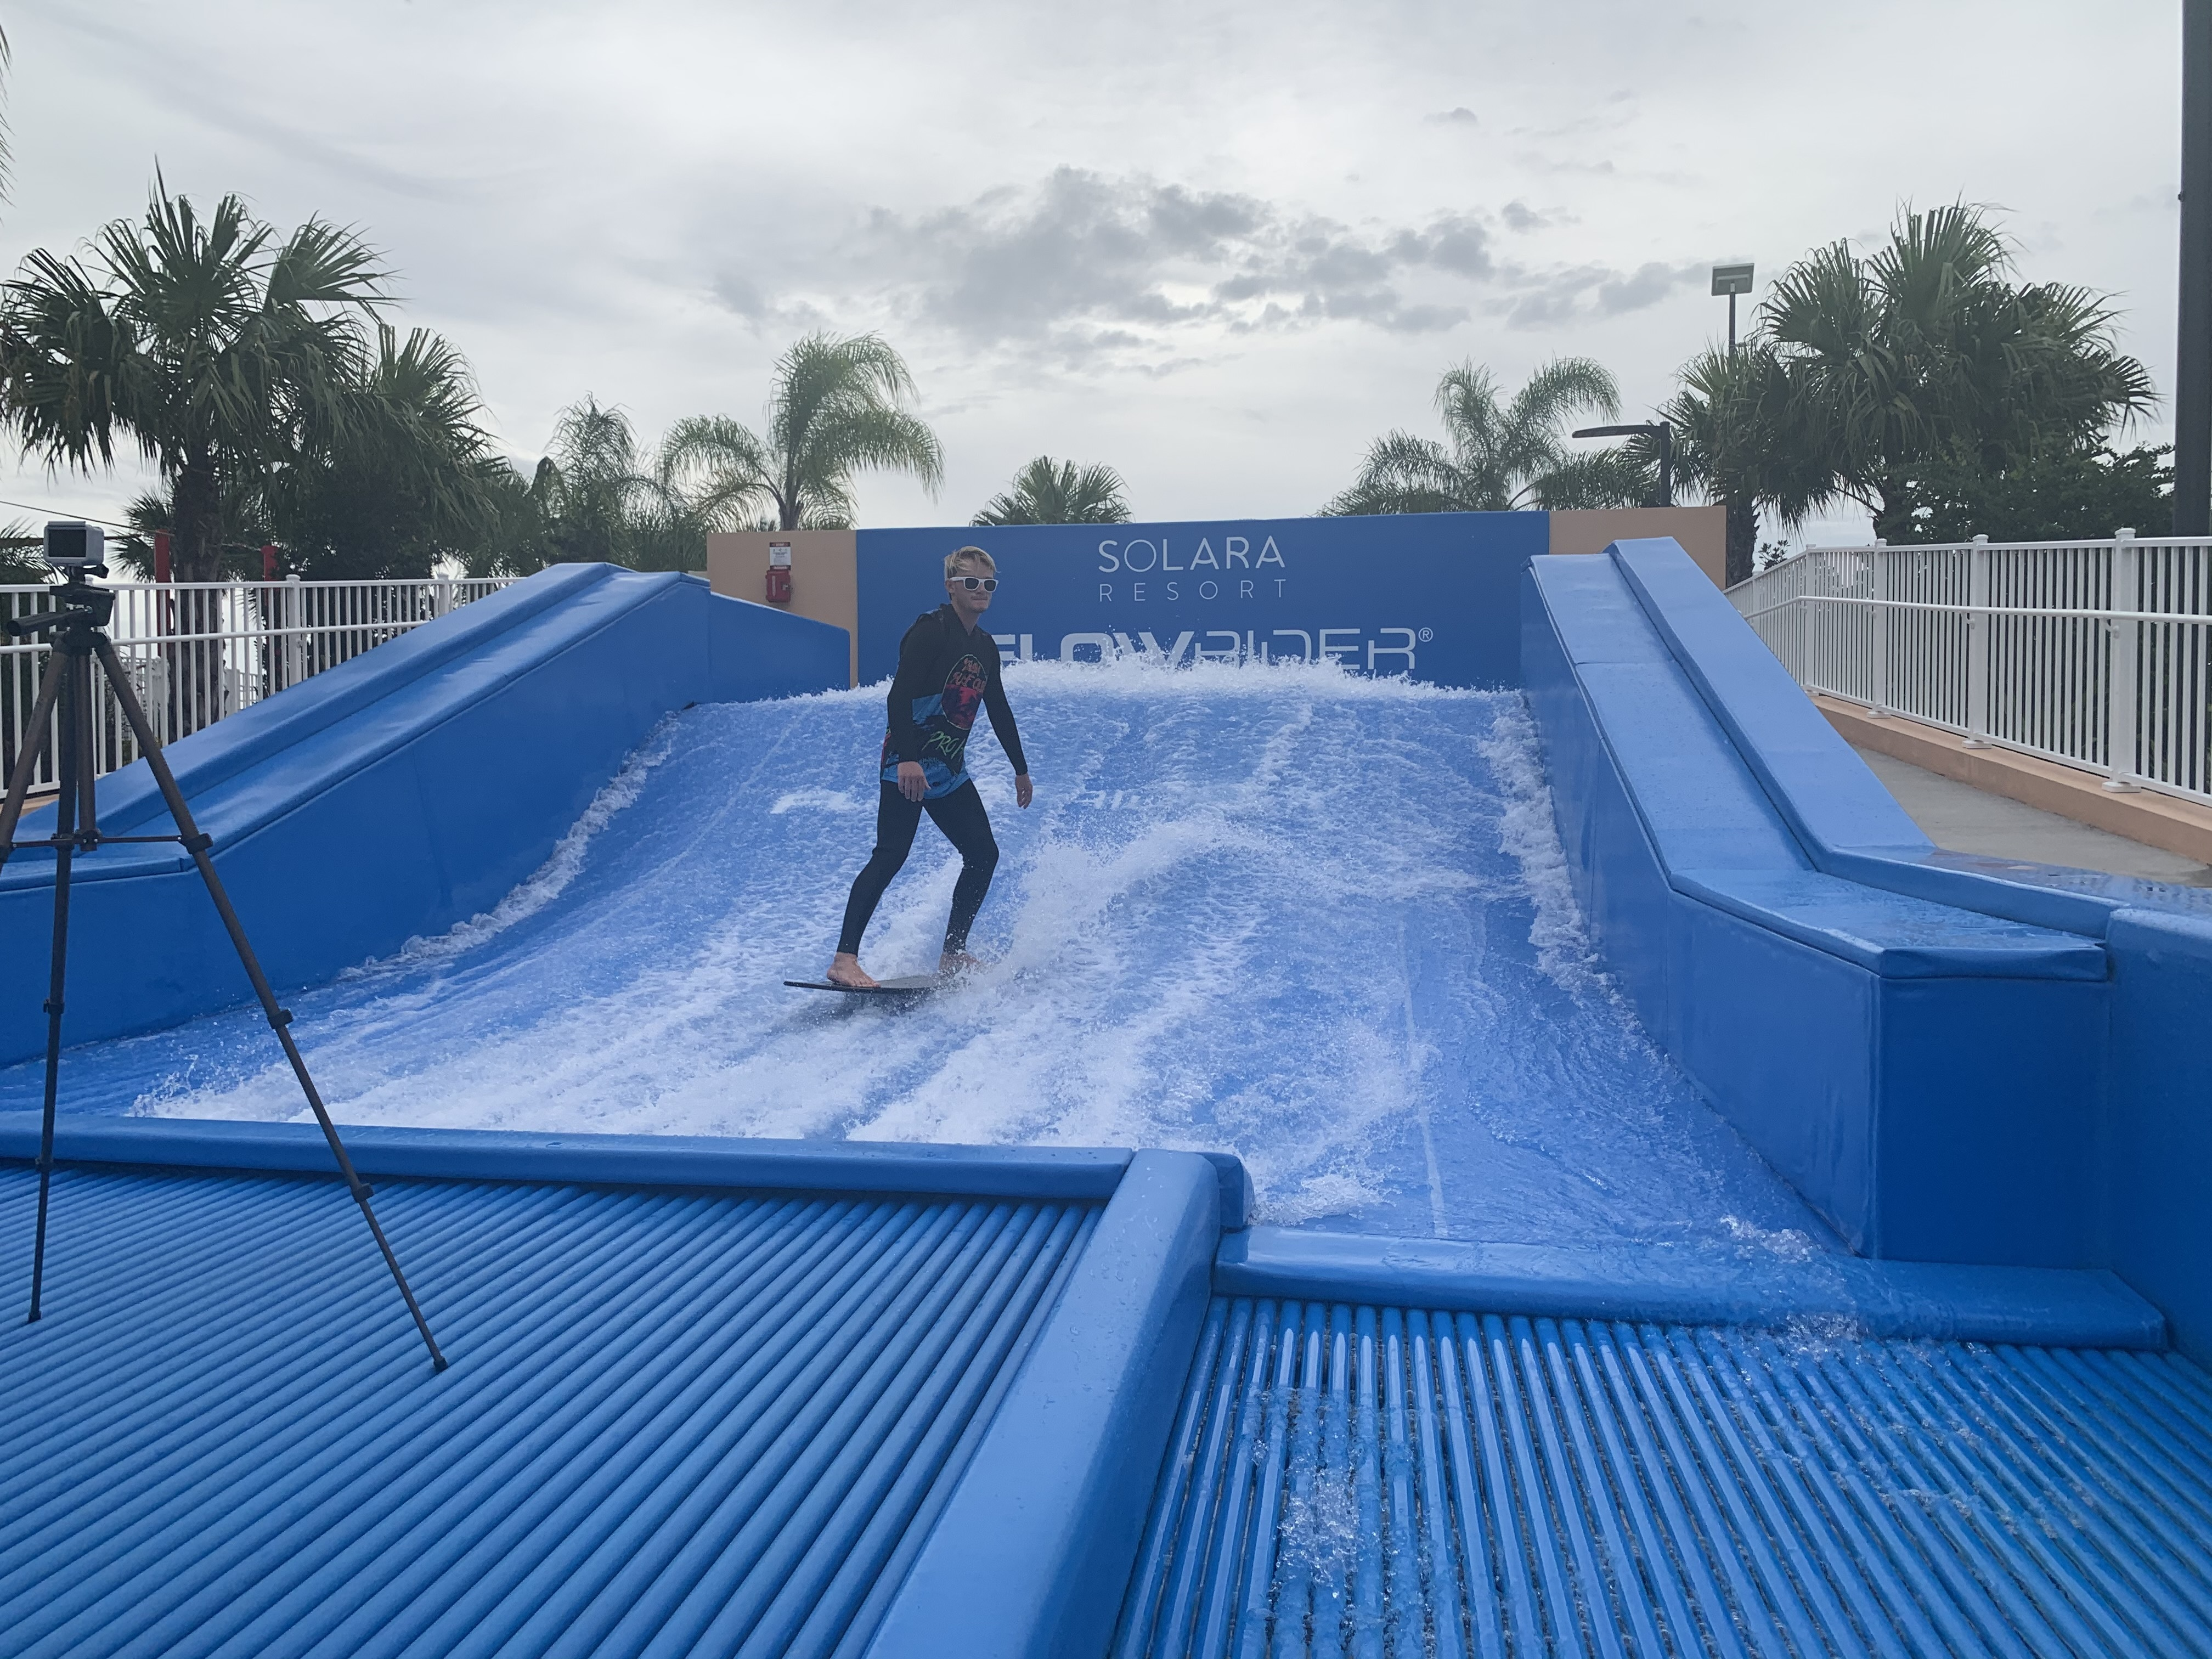 Joel Stevens on the FlowRider